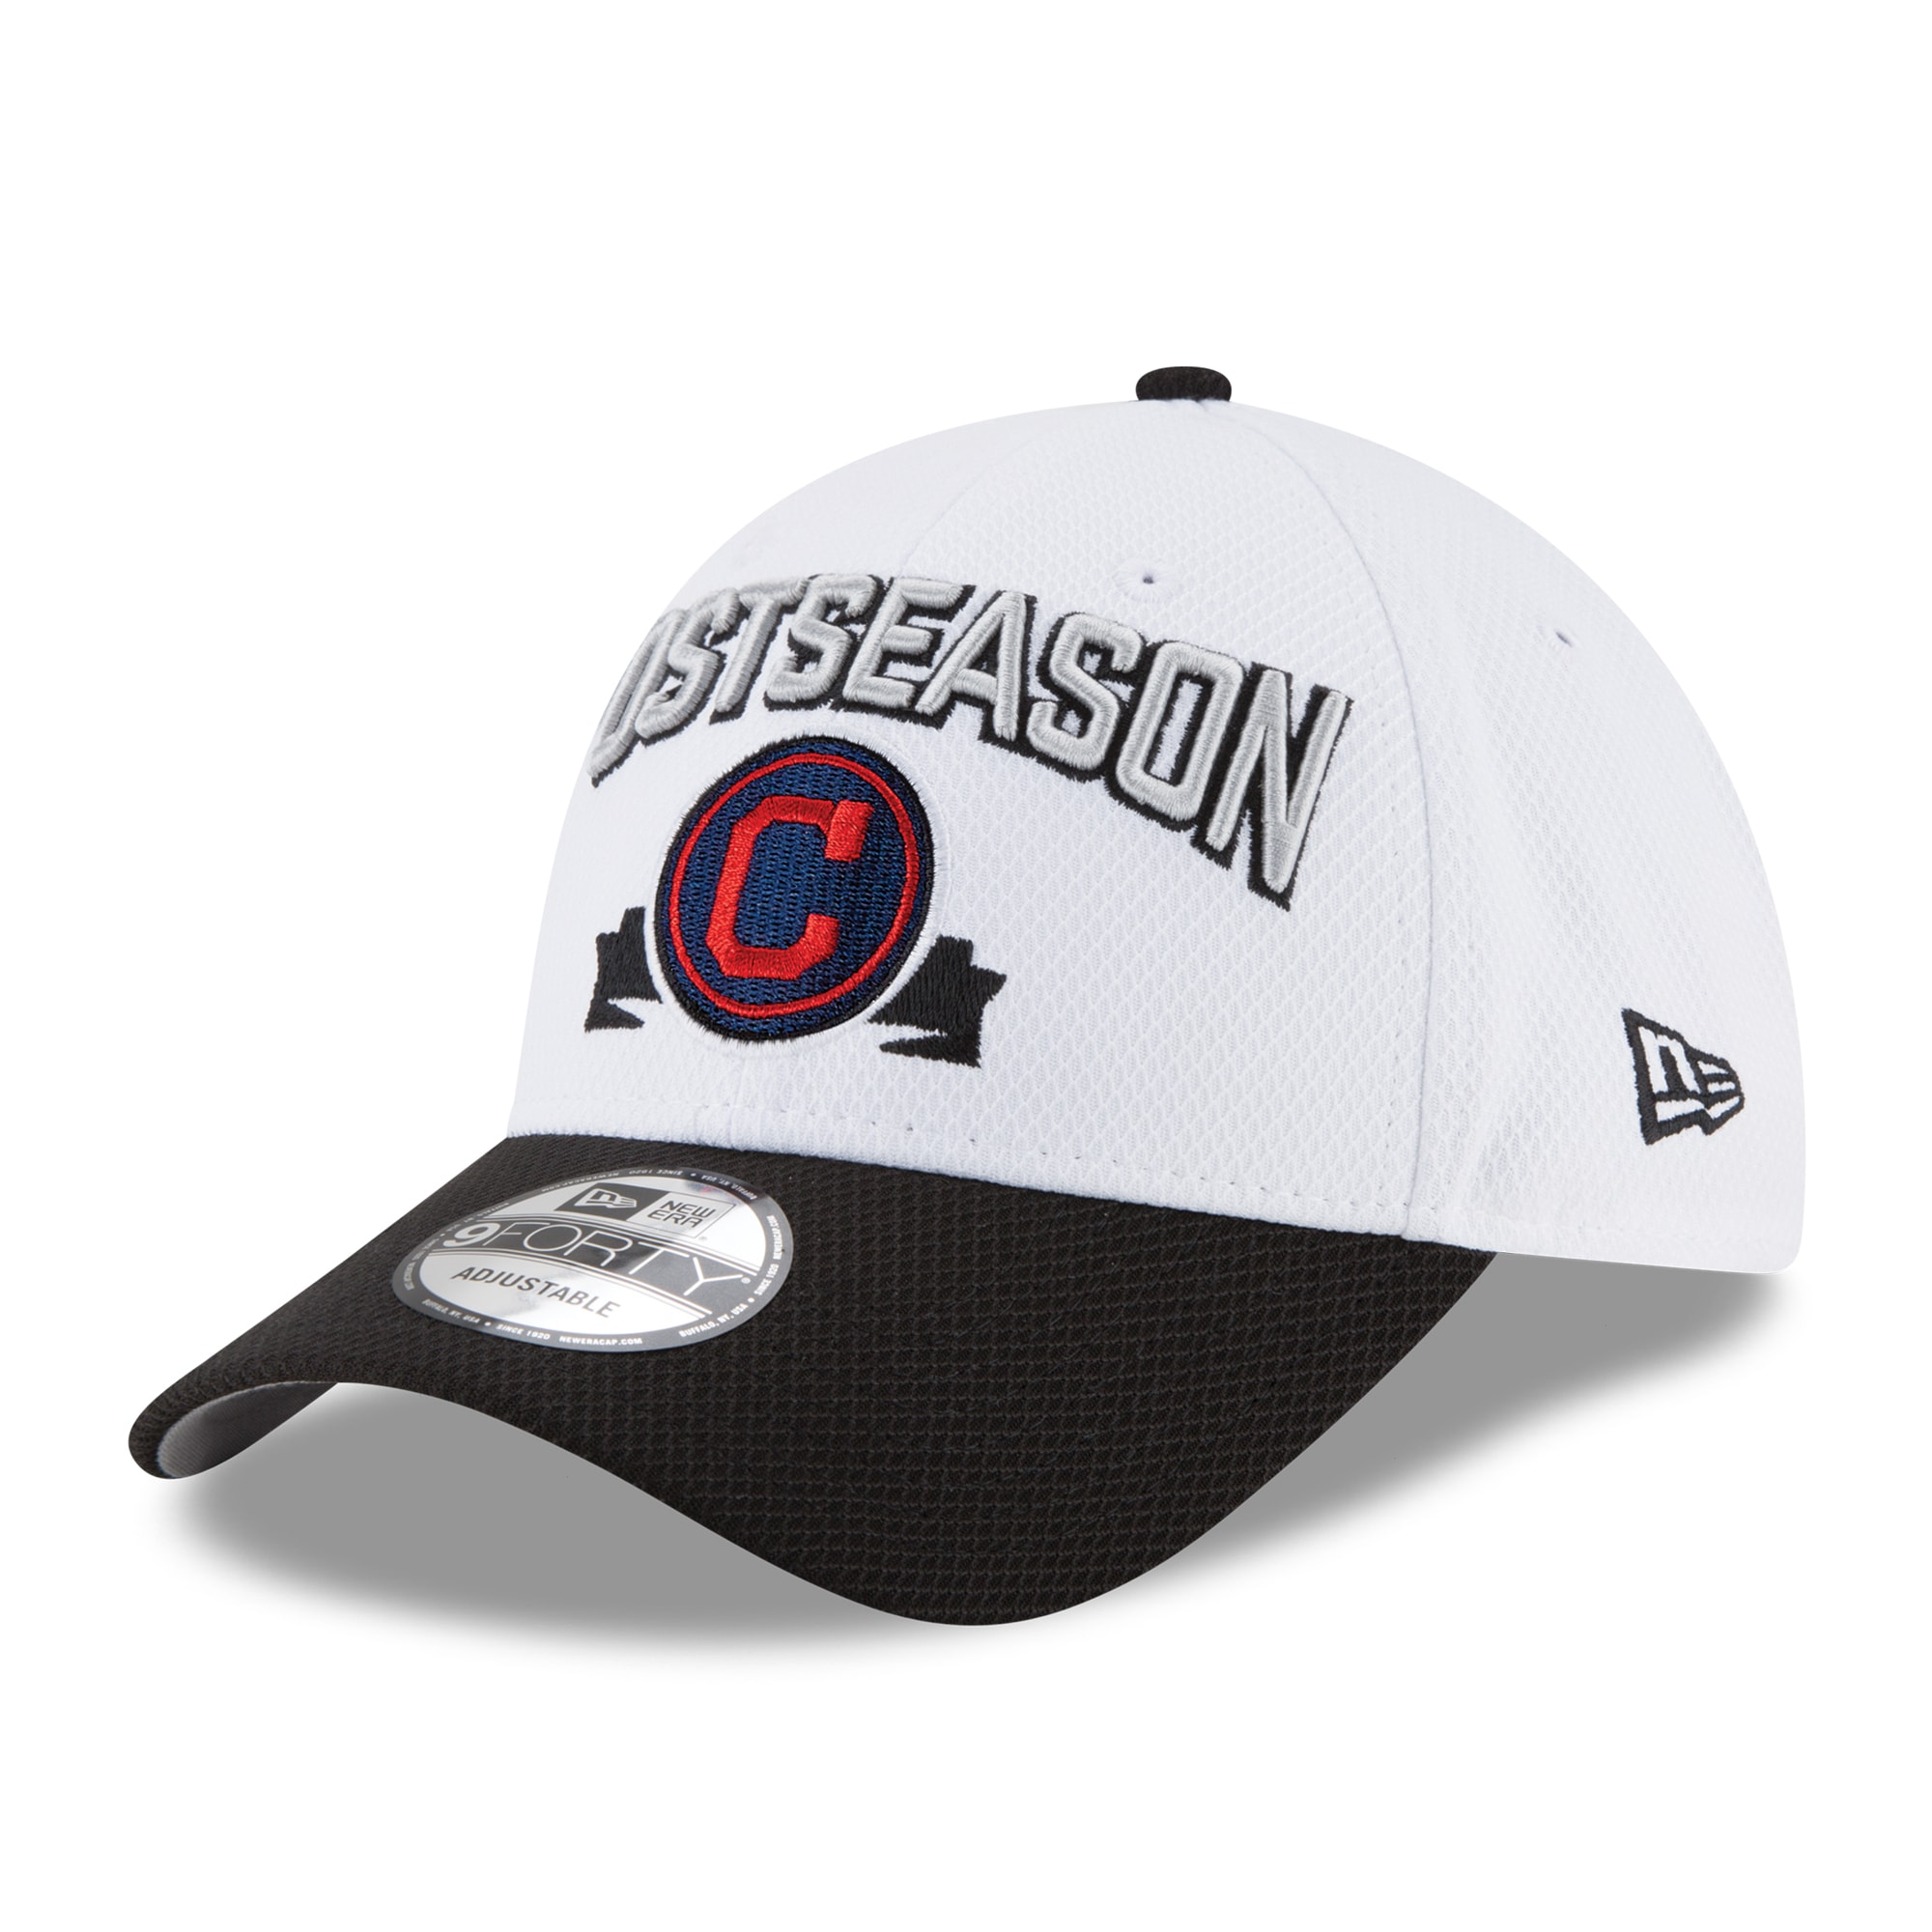 Cleveland Indians New Era 2016 Division Series Winner Locker Room 9FORTY Adjustable Hat - White